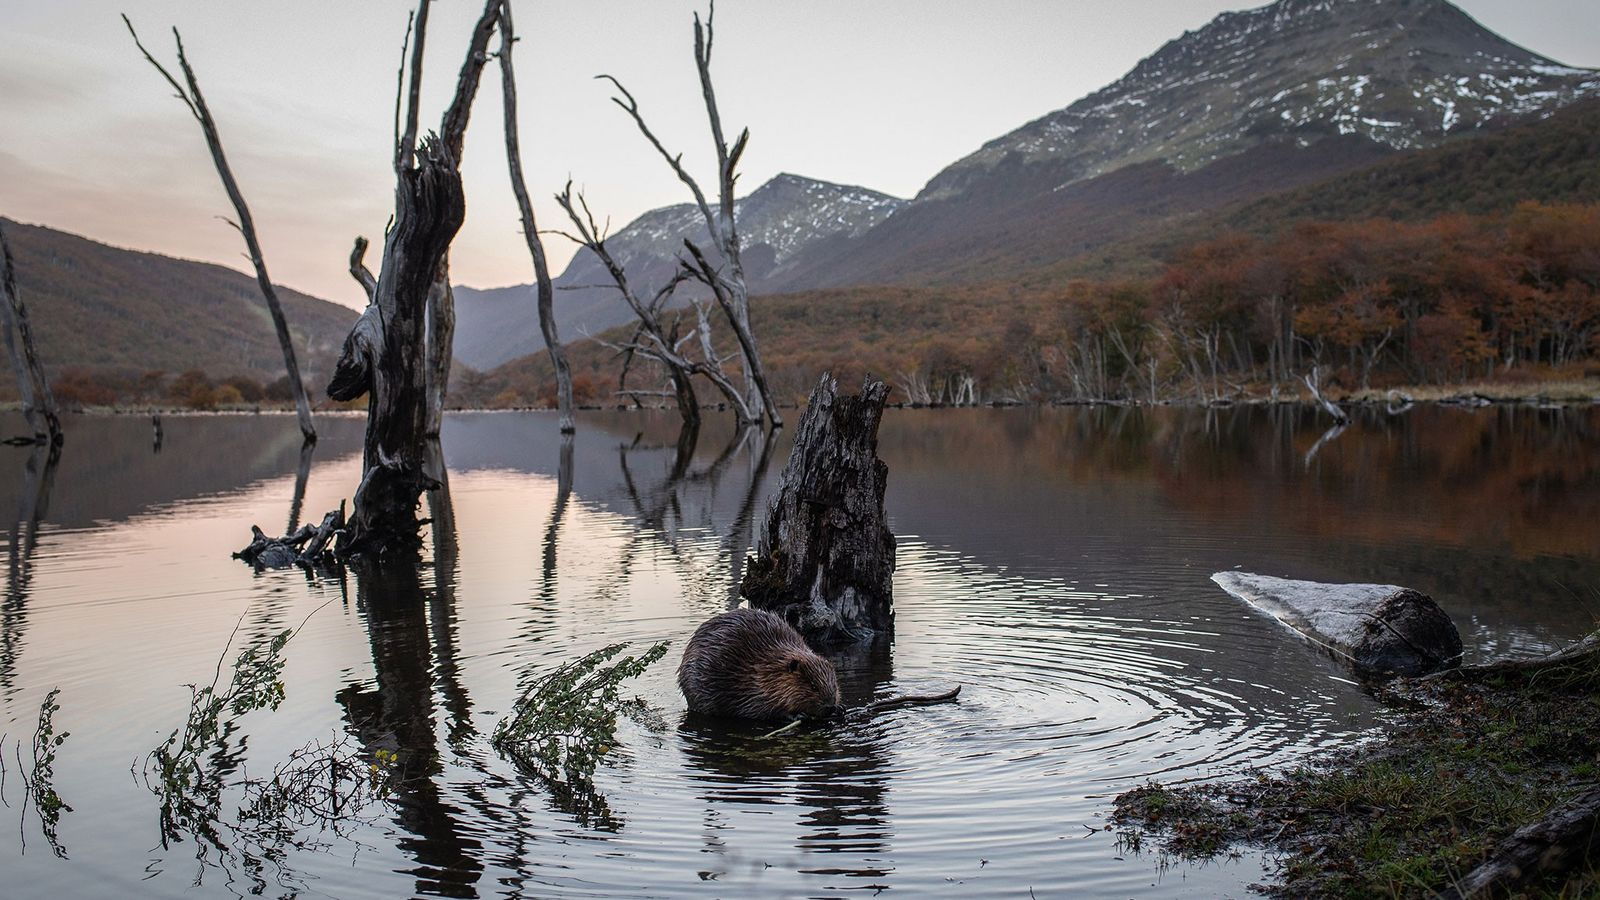 As the sun sets in Tierra del Fuego, a beaver munches on a tree branch next ...